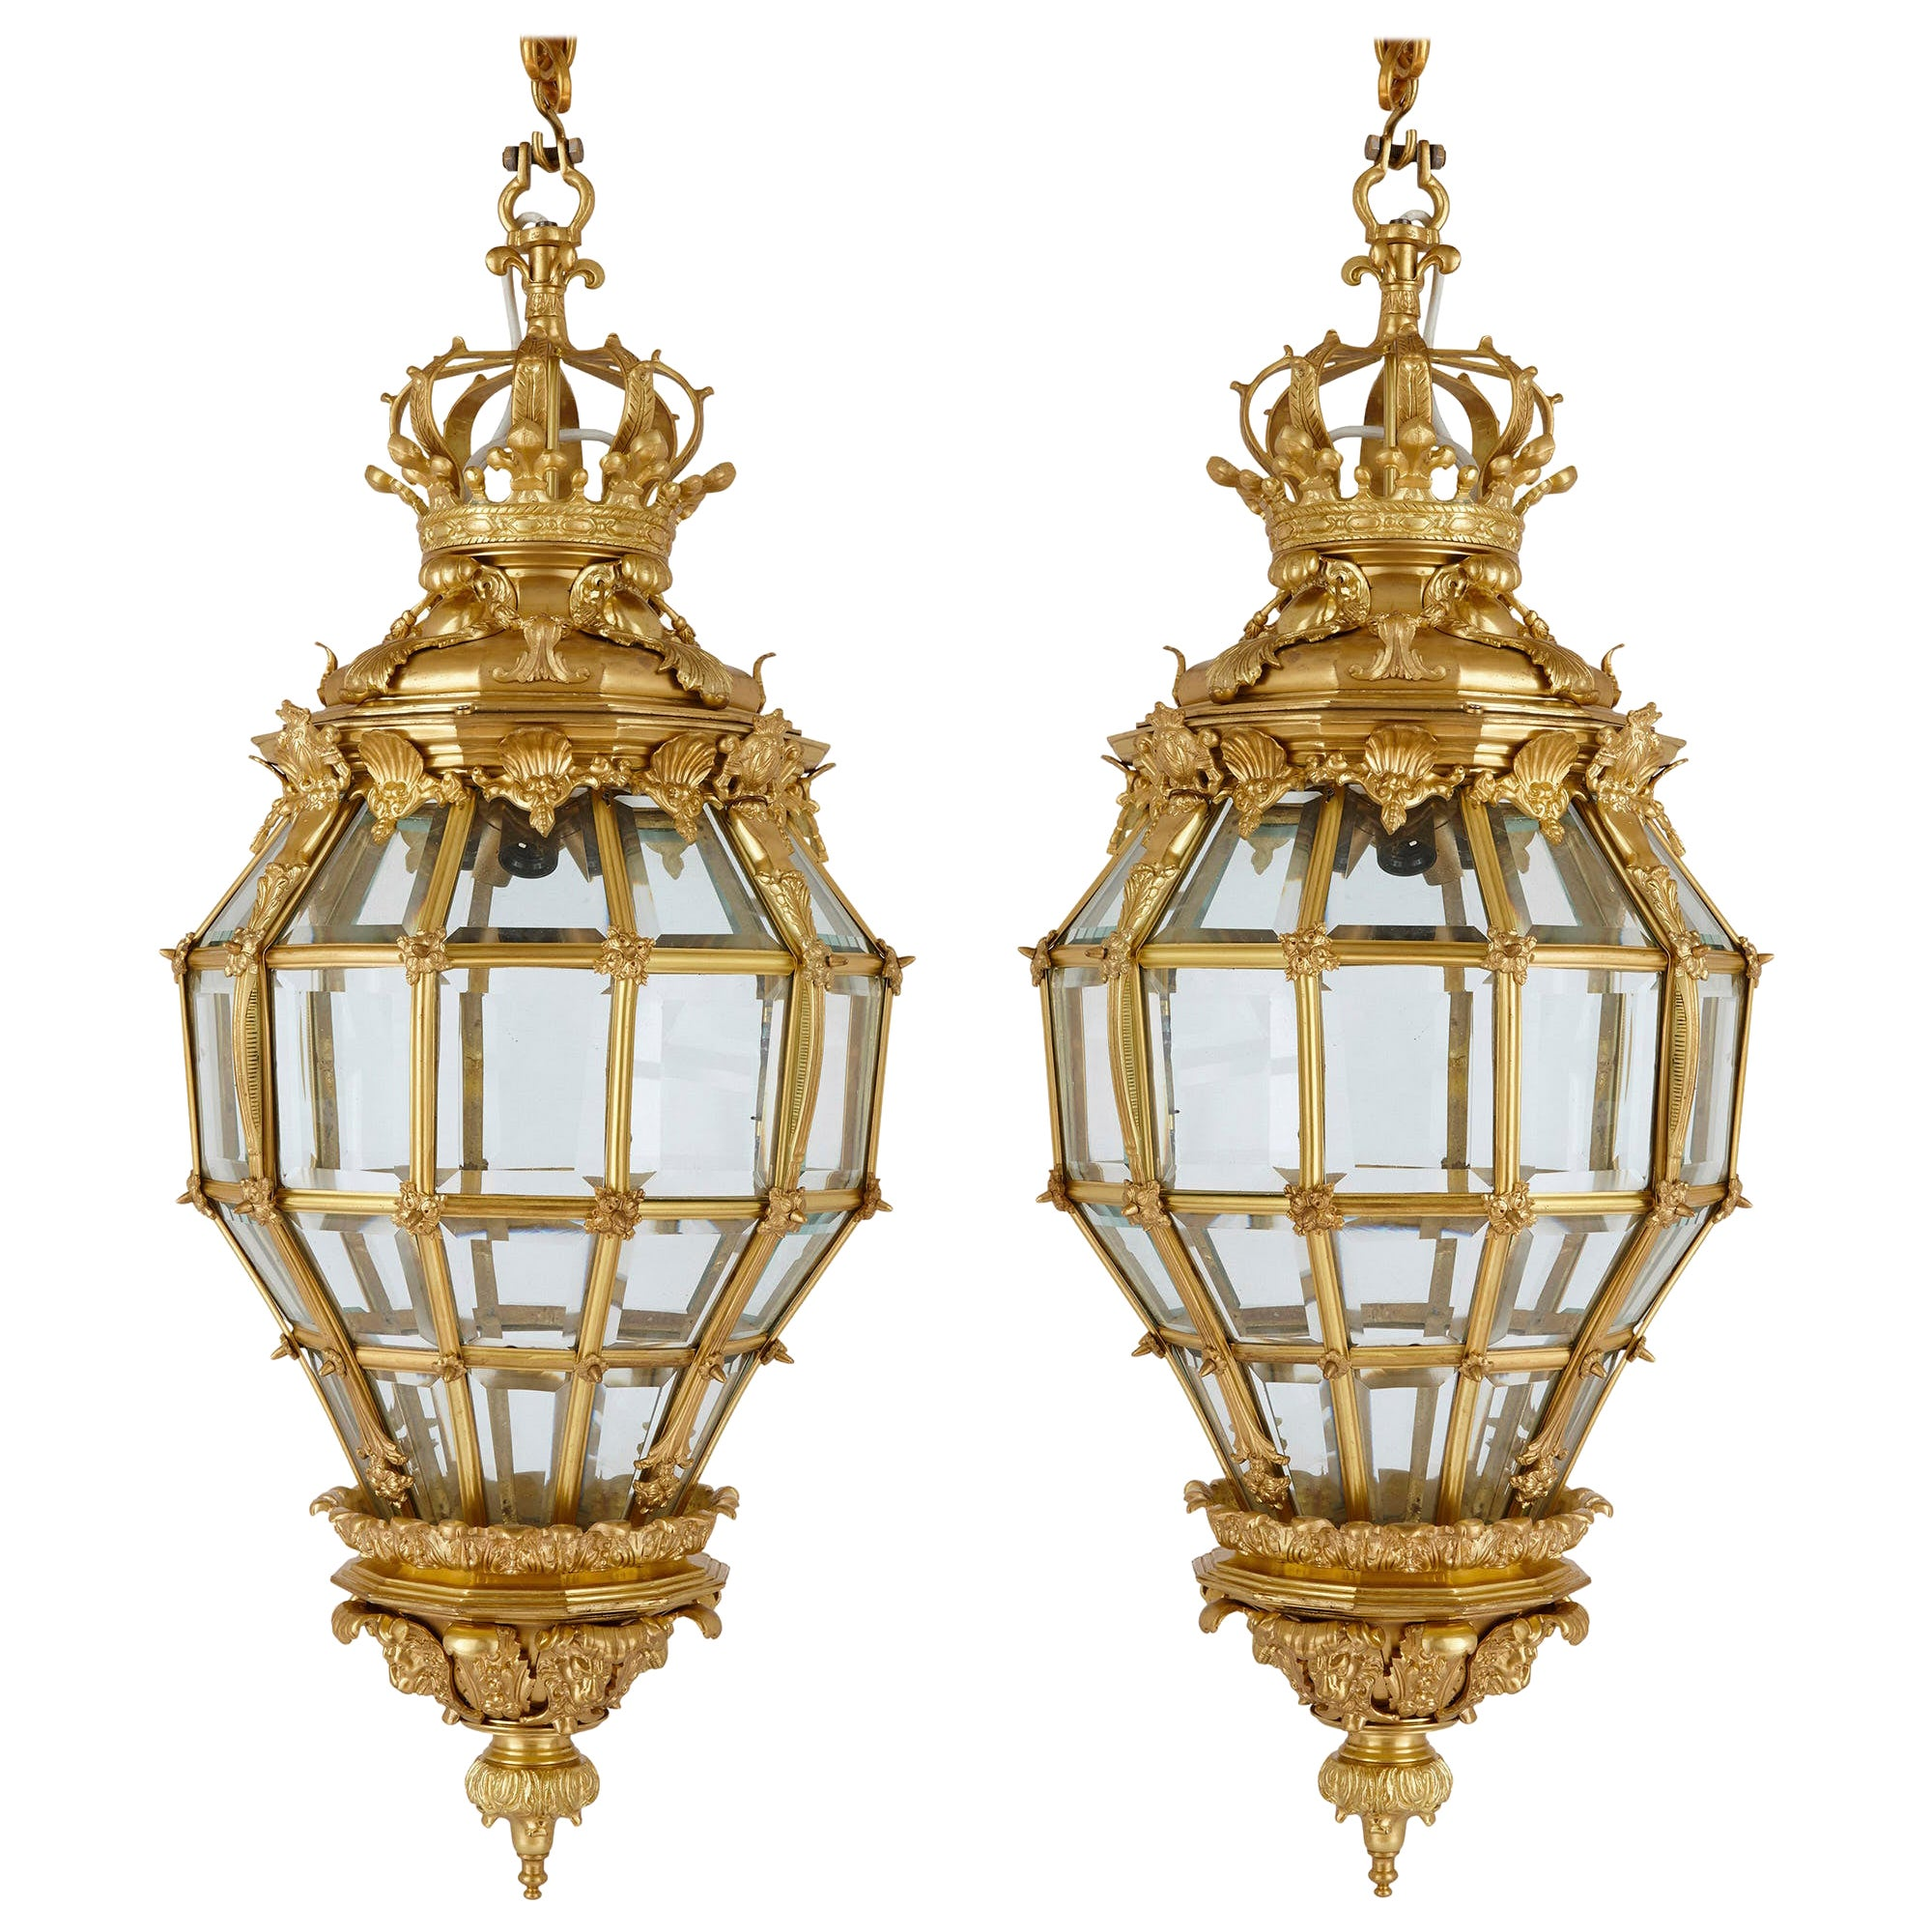 Pair of Louis XVI Style Gilt Bronze and Glass Lanterns